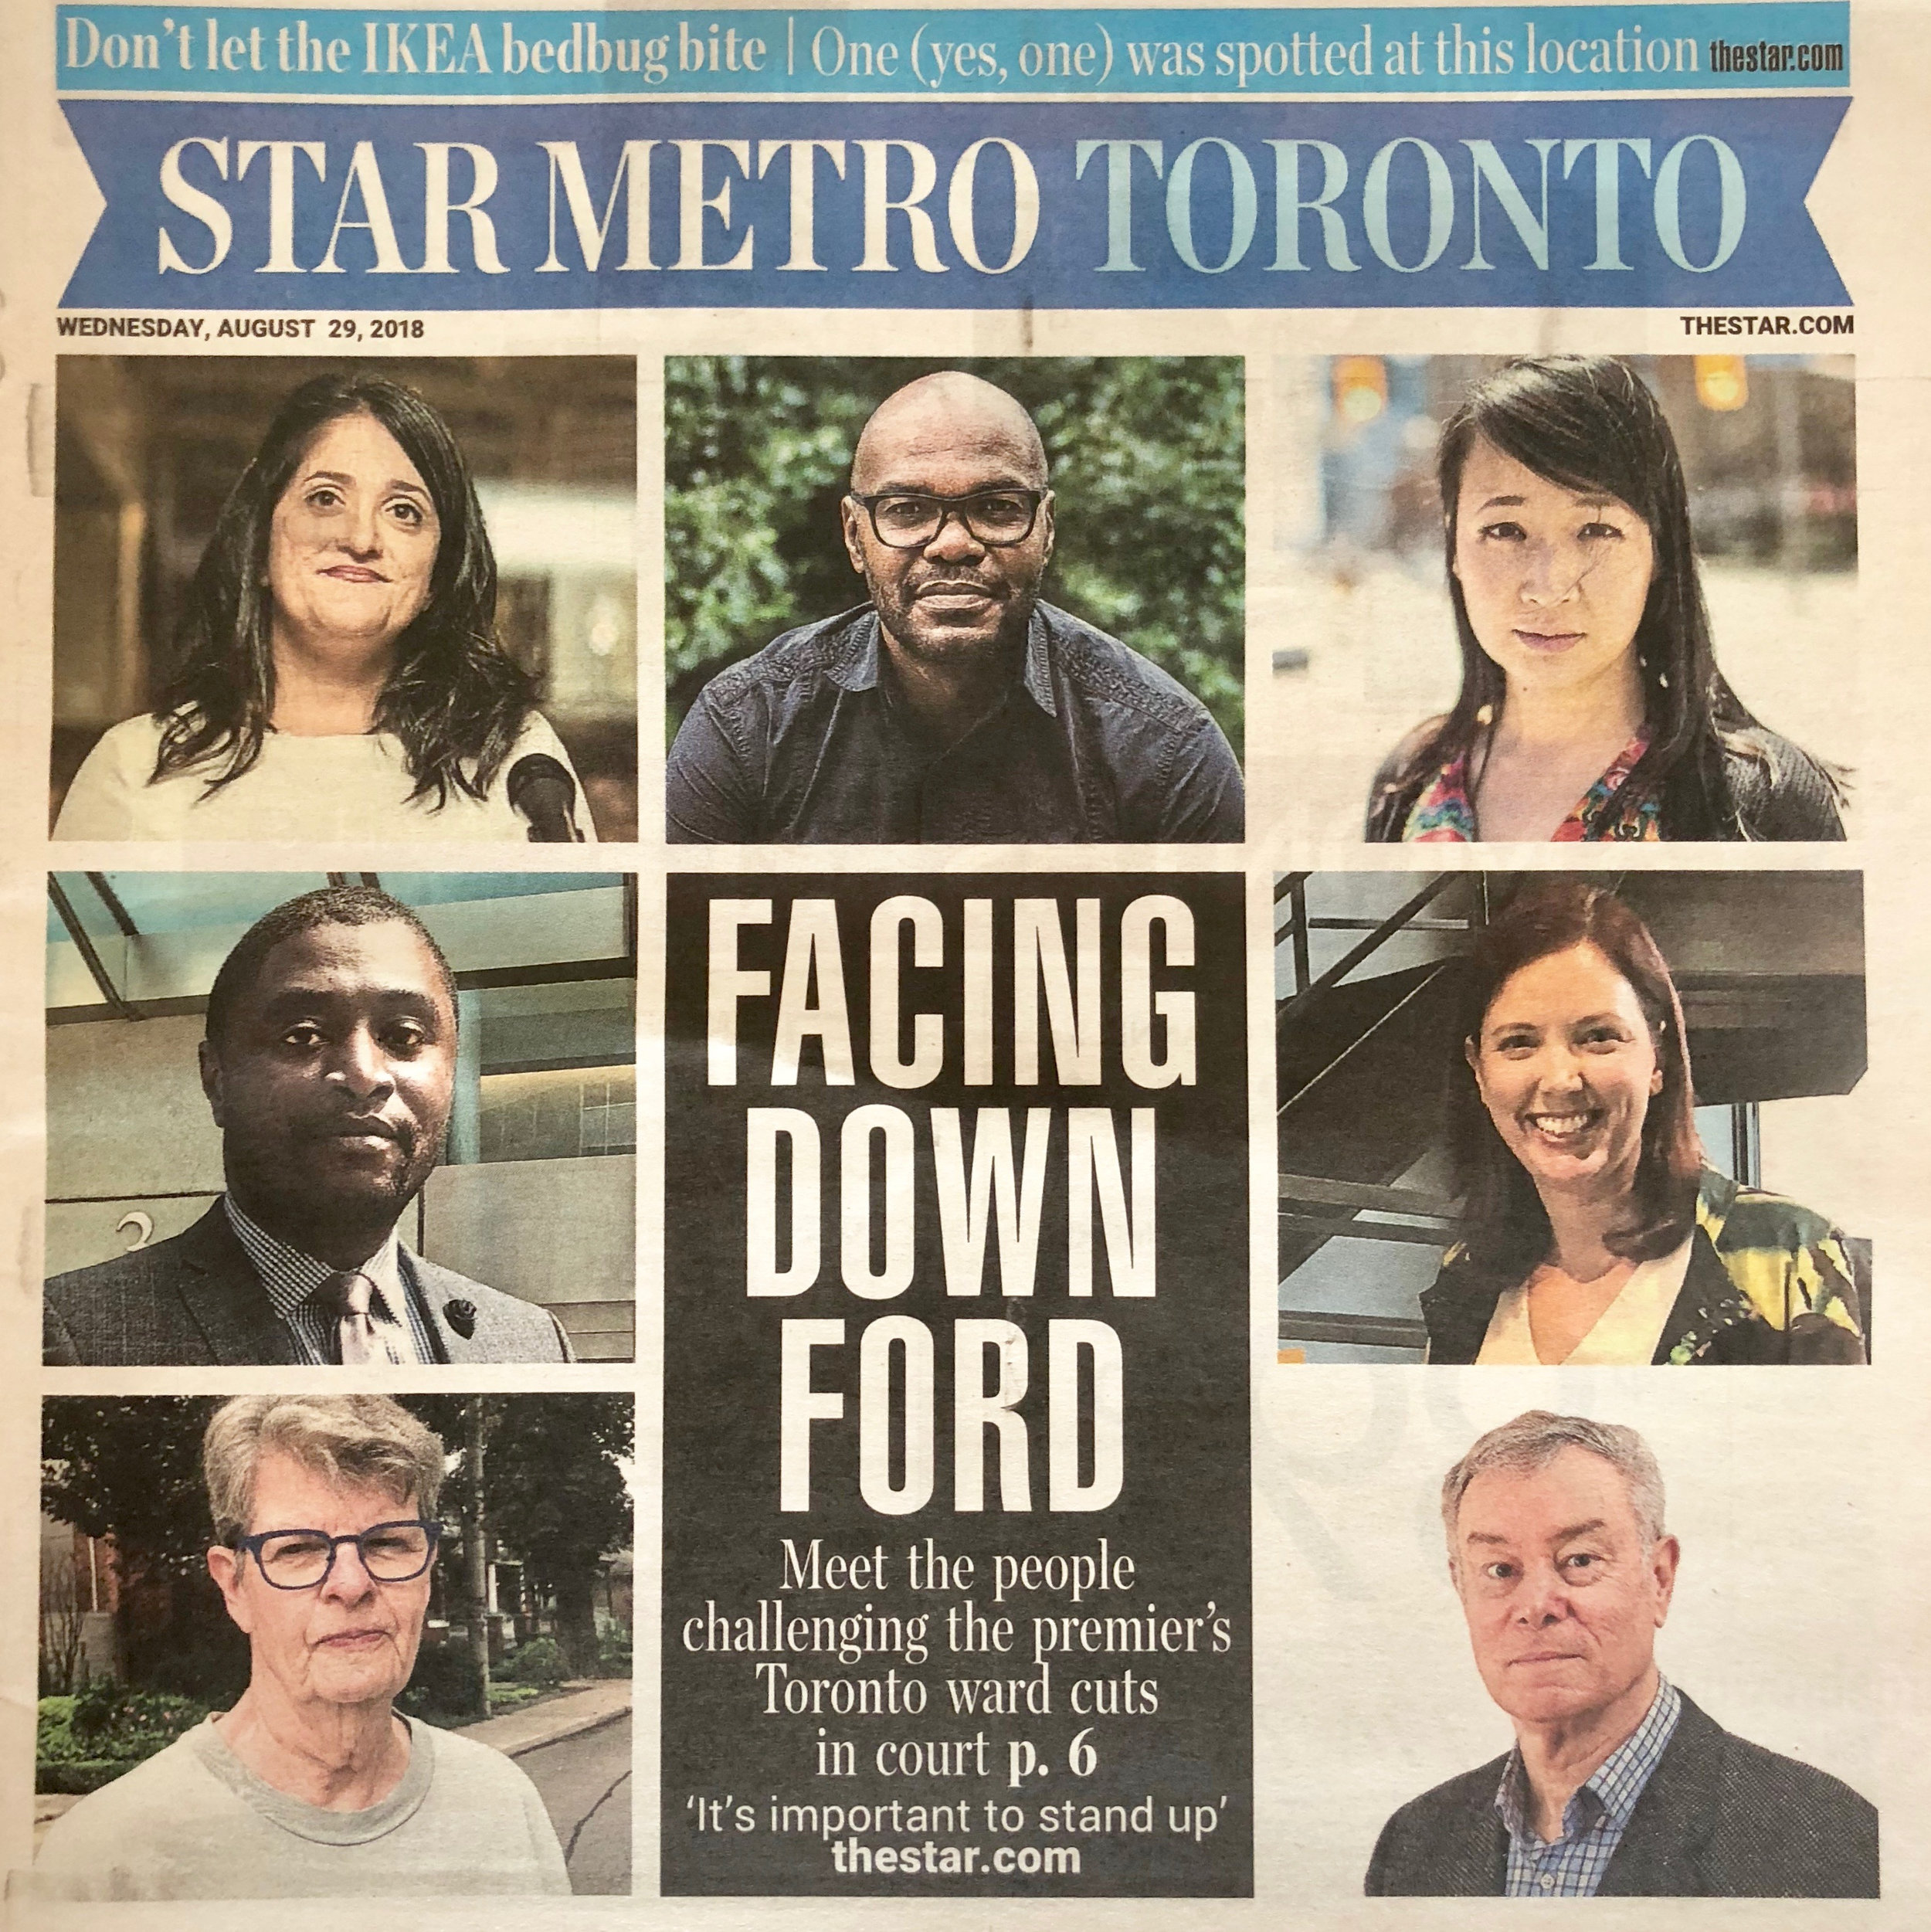 See their profile in the Toronto Star  to learn more about them.